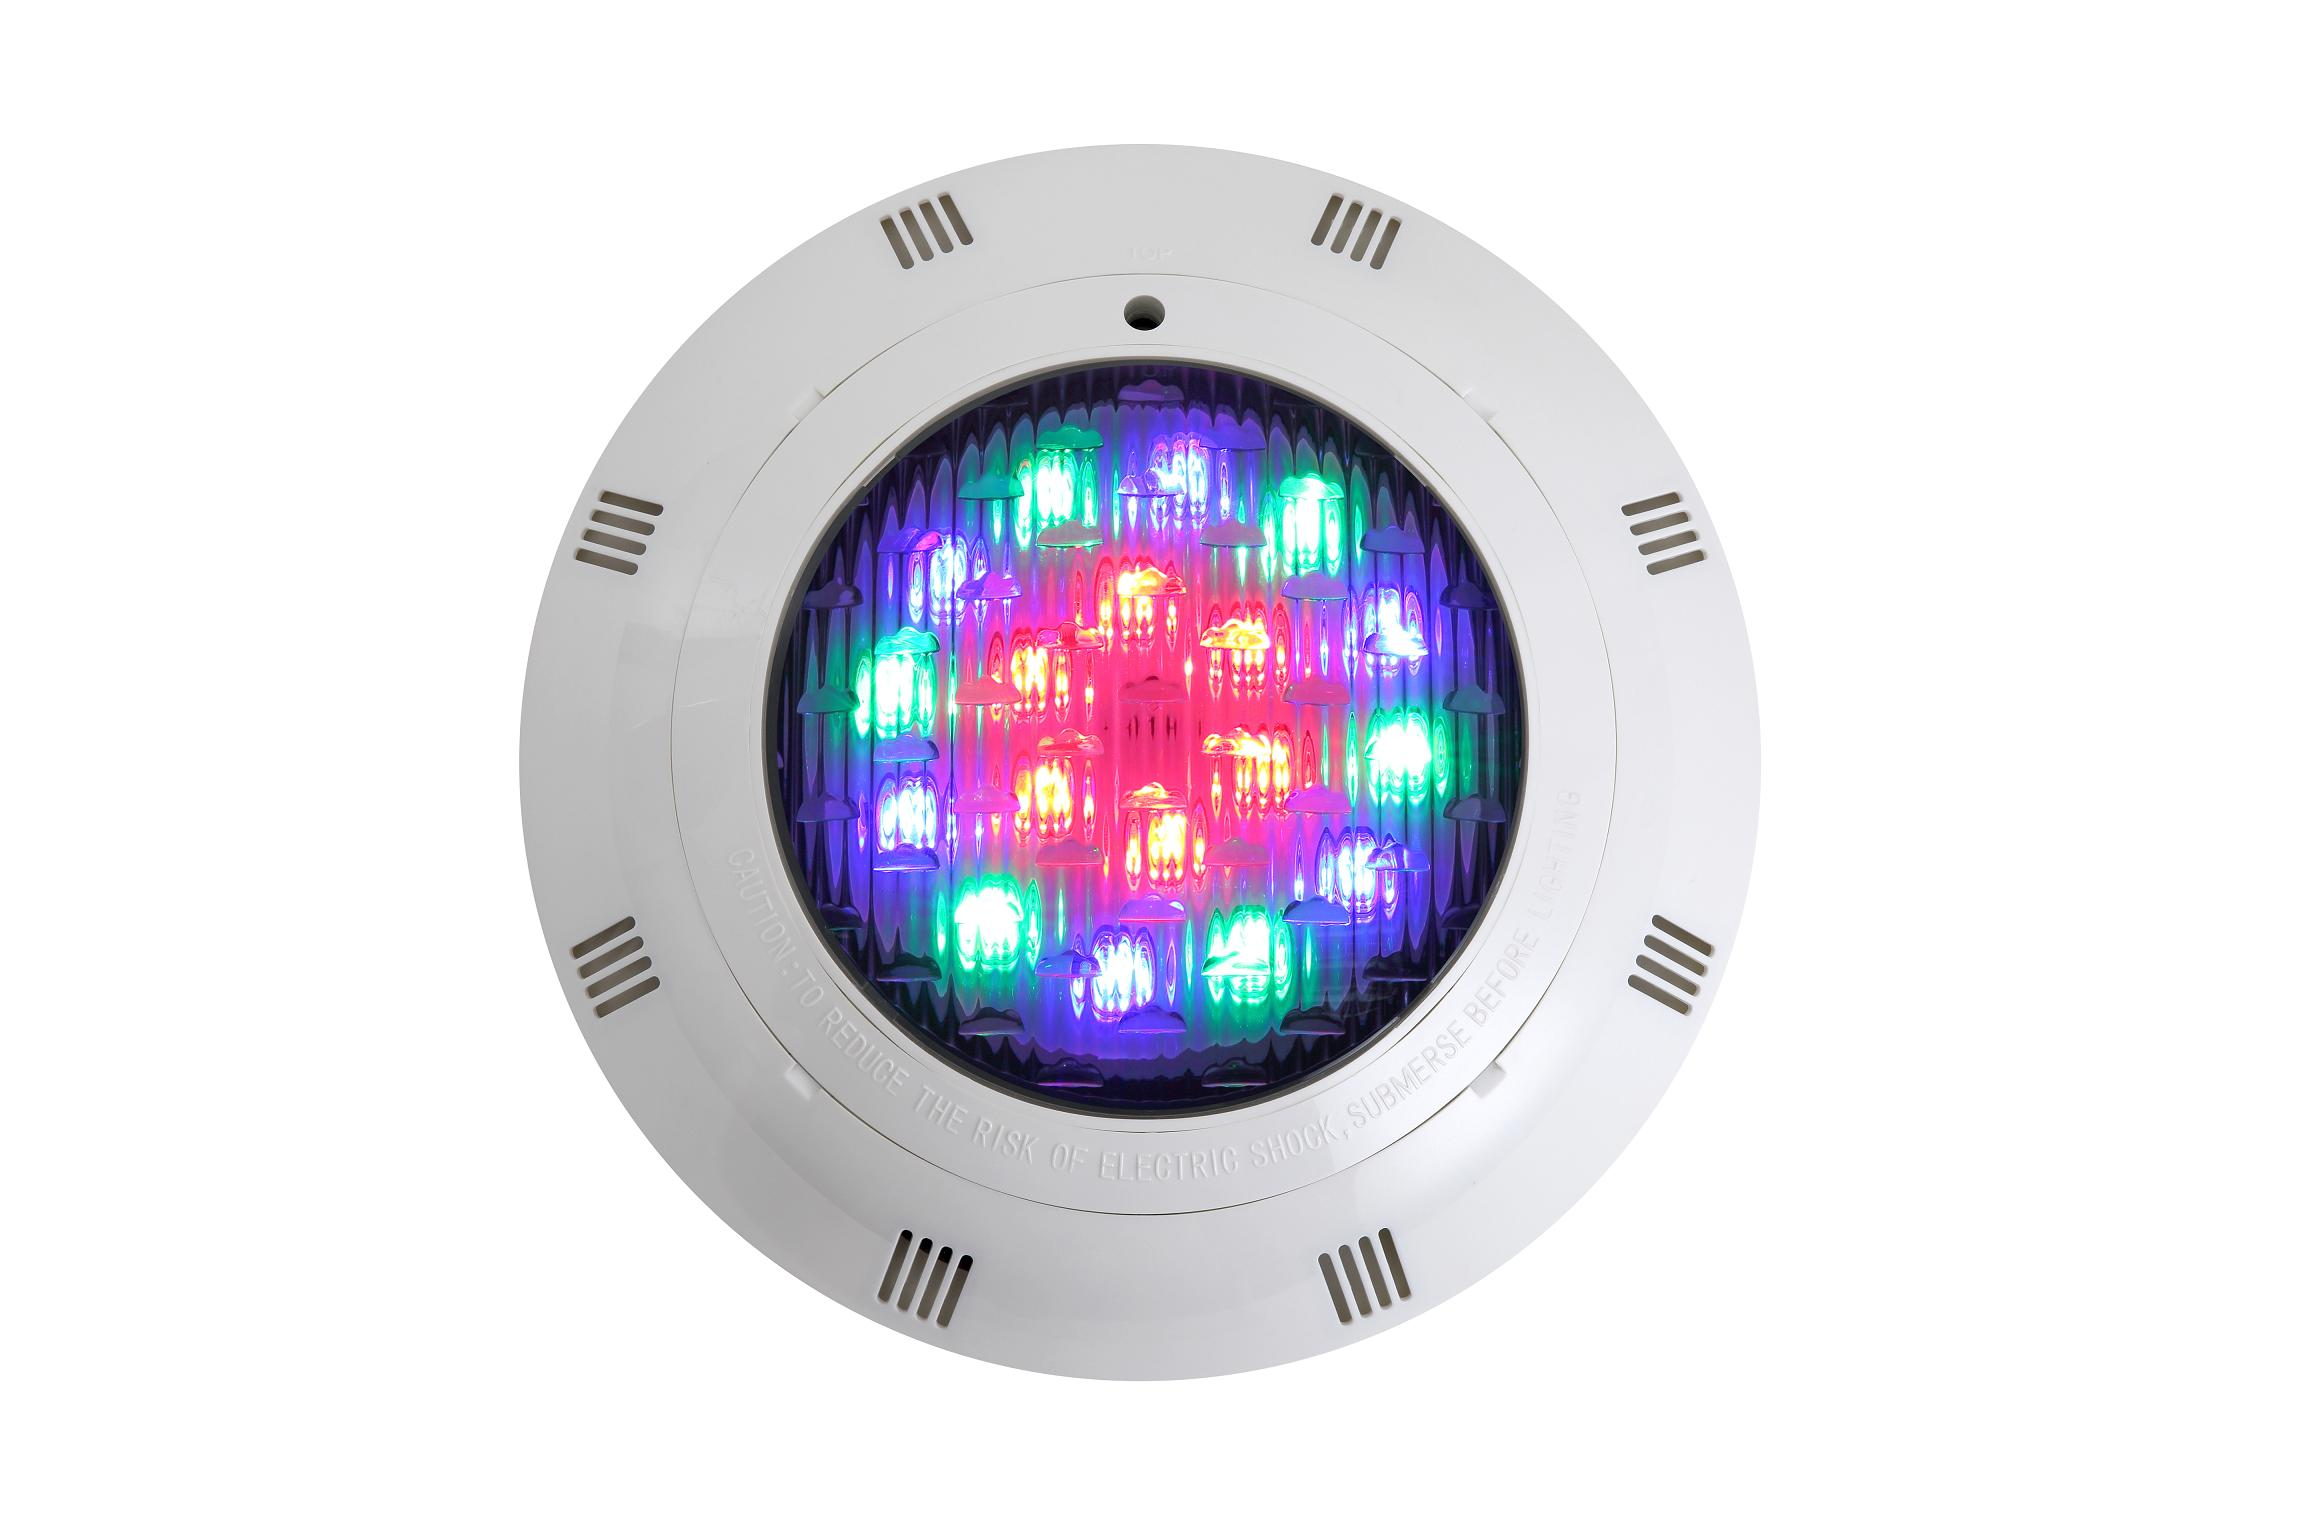 54w LED Wall Mounted Swimming Pool Light With ABS Materials